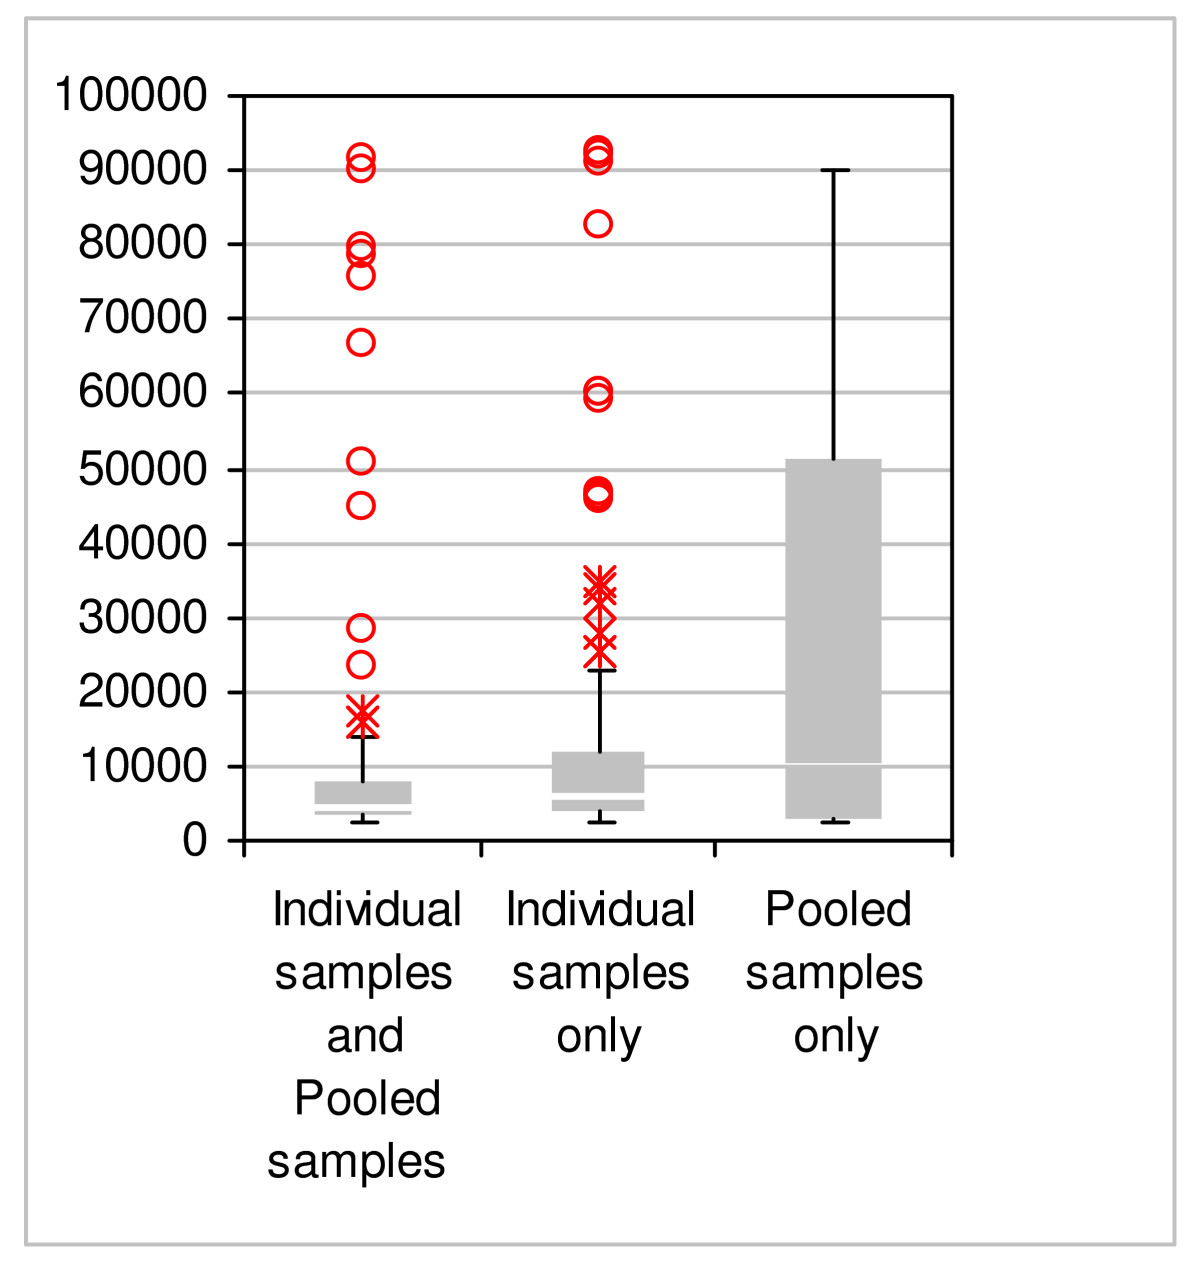 http://static-content.springer.com/image/art%3A10.1186%2F1477-5956-6-16/MediaObjects/12953_2008_Article_84_Fig5_HTML.jpg